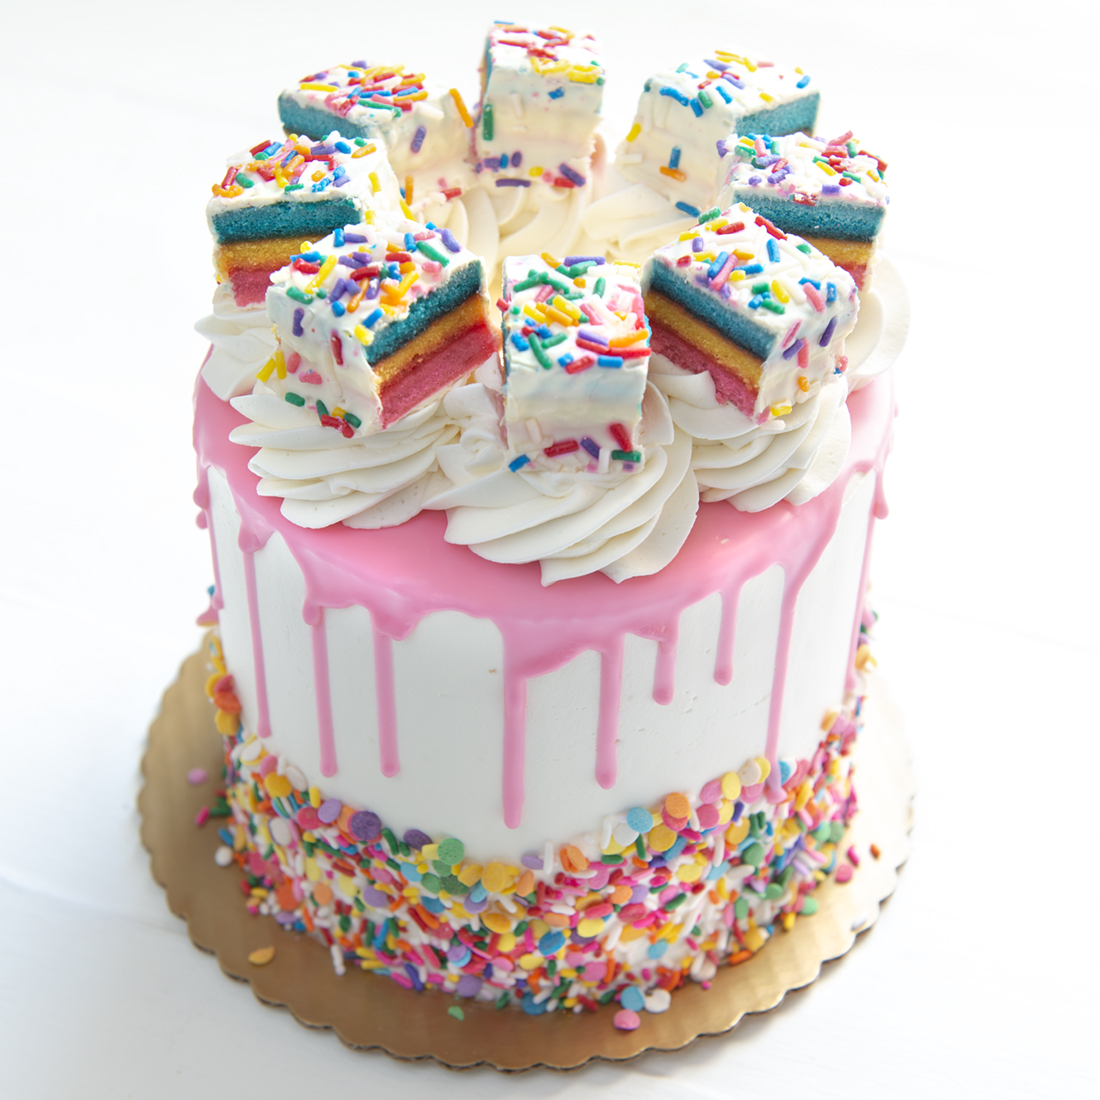 Birthday Party - Confetti cake layered with vanilla buttercream and sprinkles, frosted in vanilla buttercream, white chocolate 'drip' in the color of your choice, mini birthday cake pieces, adorned with your choice of multi-color pastel or primary confetti sprinkles6